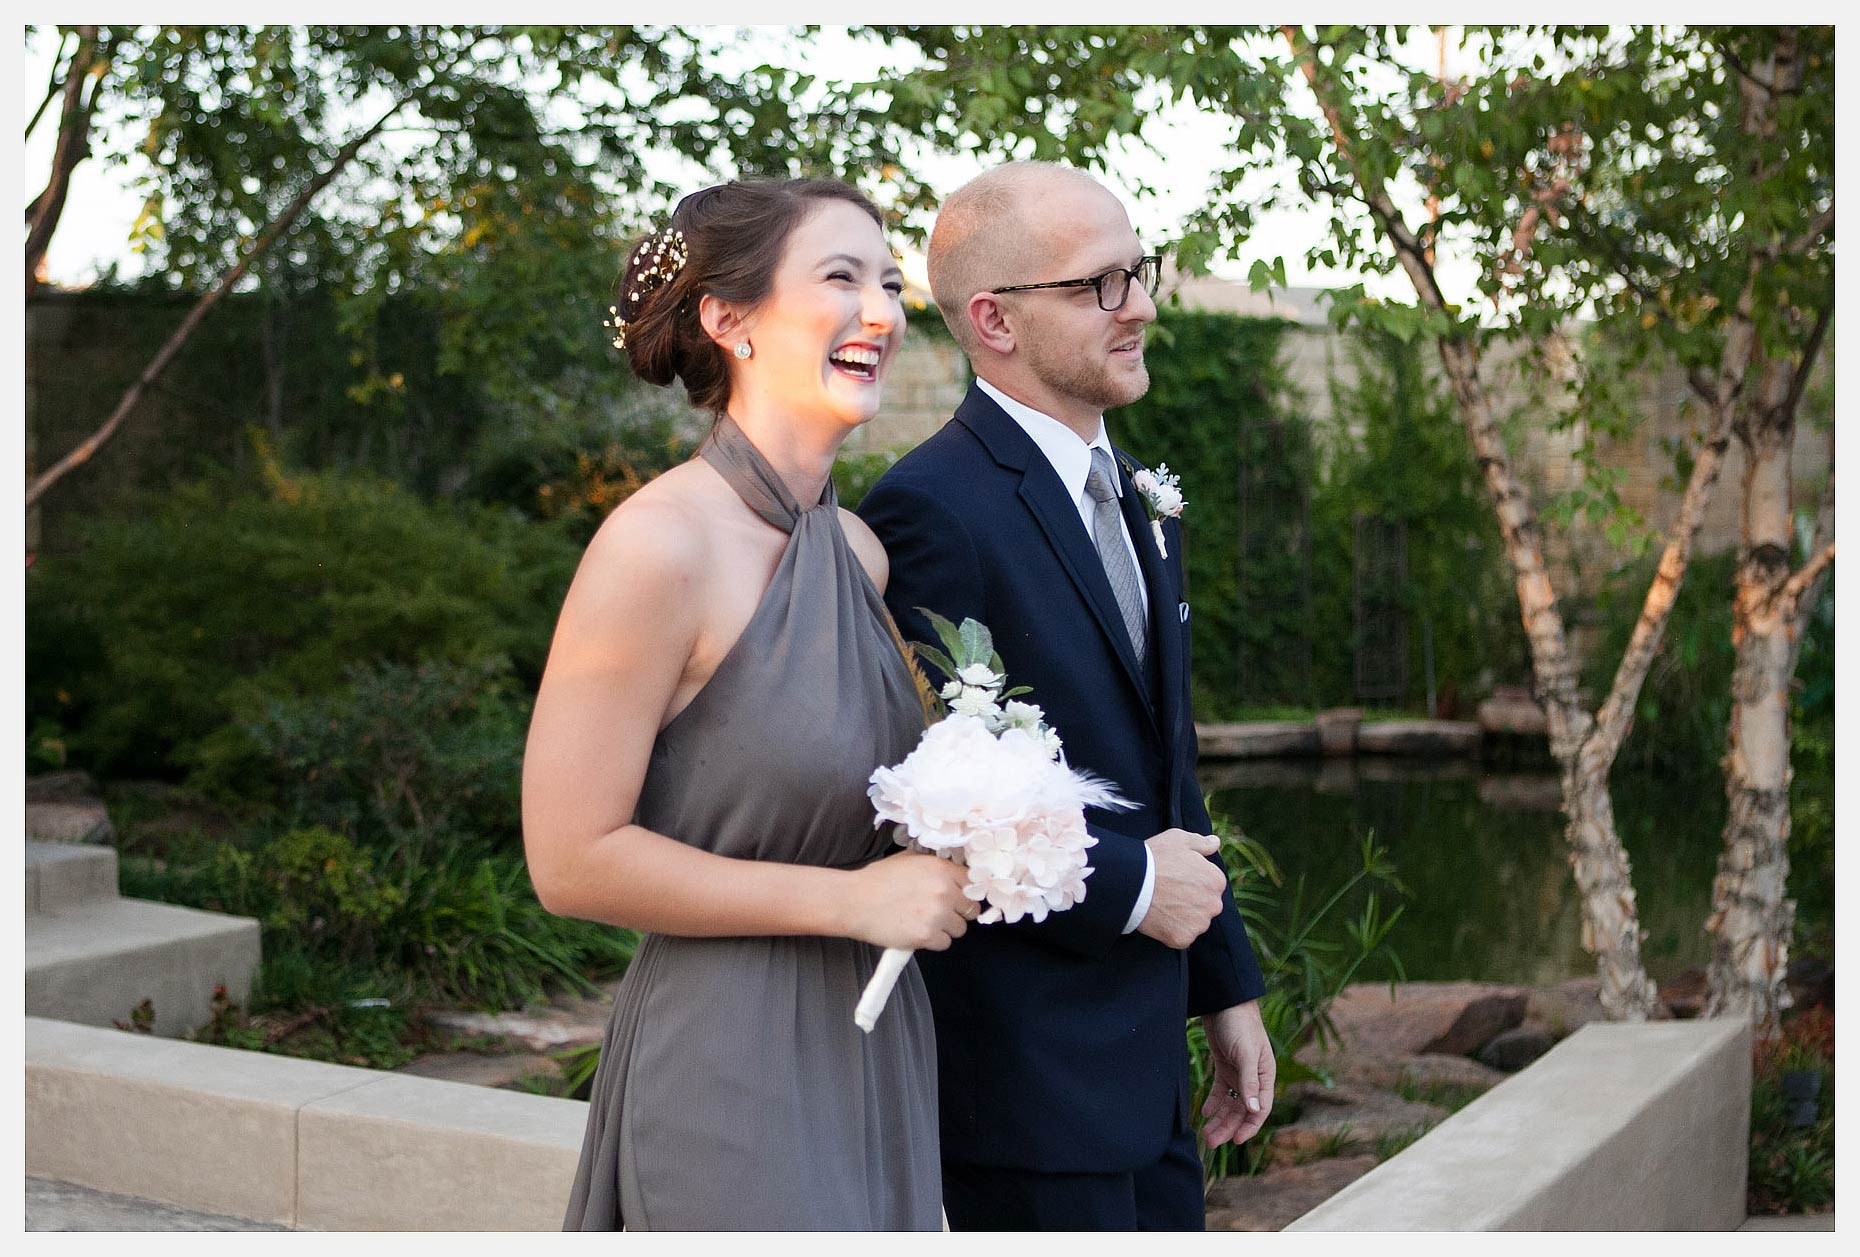 Madison-Carver-Wedding-by-Stephen-Masker-Photography-0093